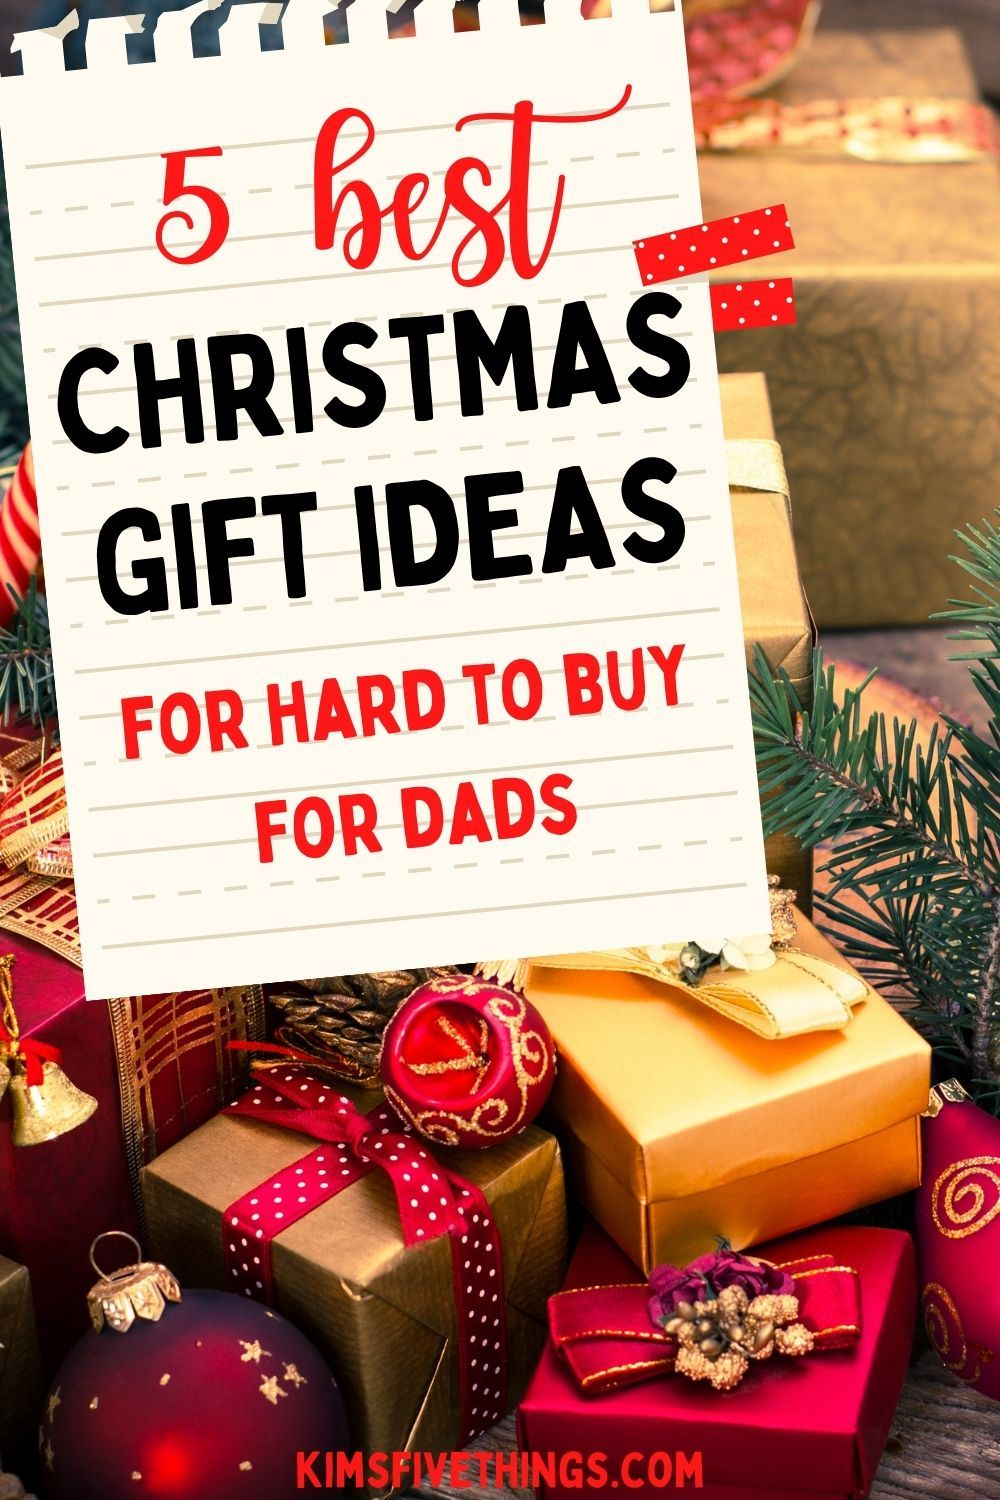 Top 5 Christmas Gifts For Your Dad Meaningful Gifts For Dad Kims Home Ideas In 2020 Top 5 Christmas Gifts Christmas Gifts Meaningful Gifts